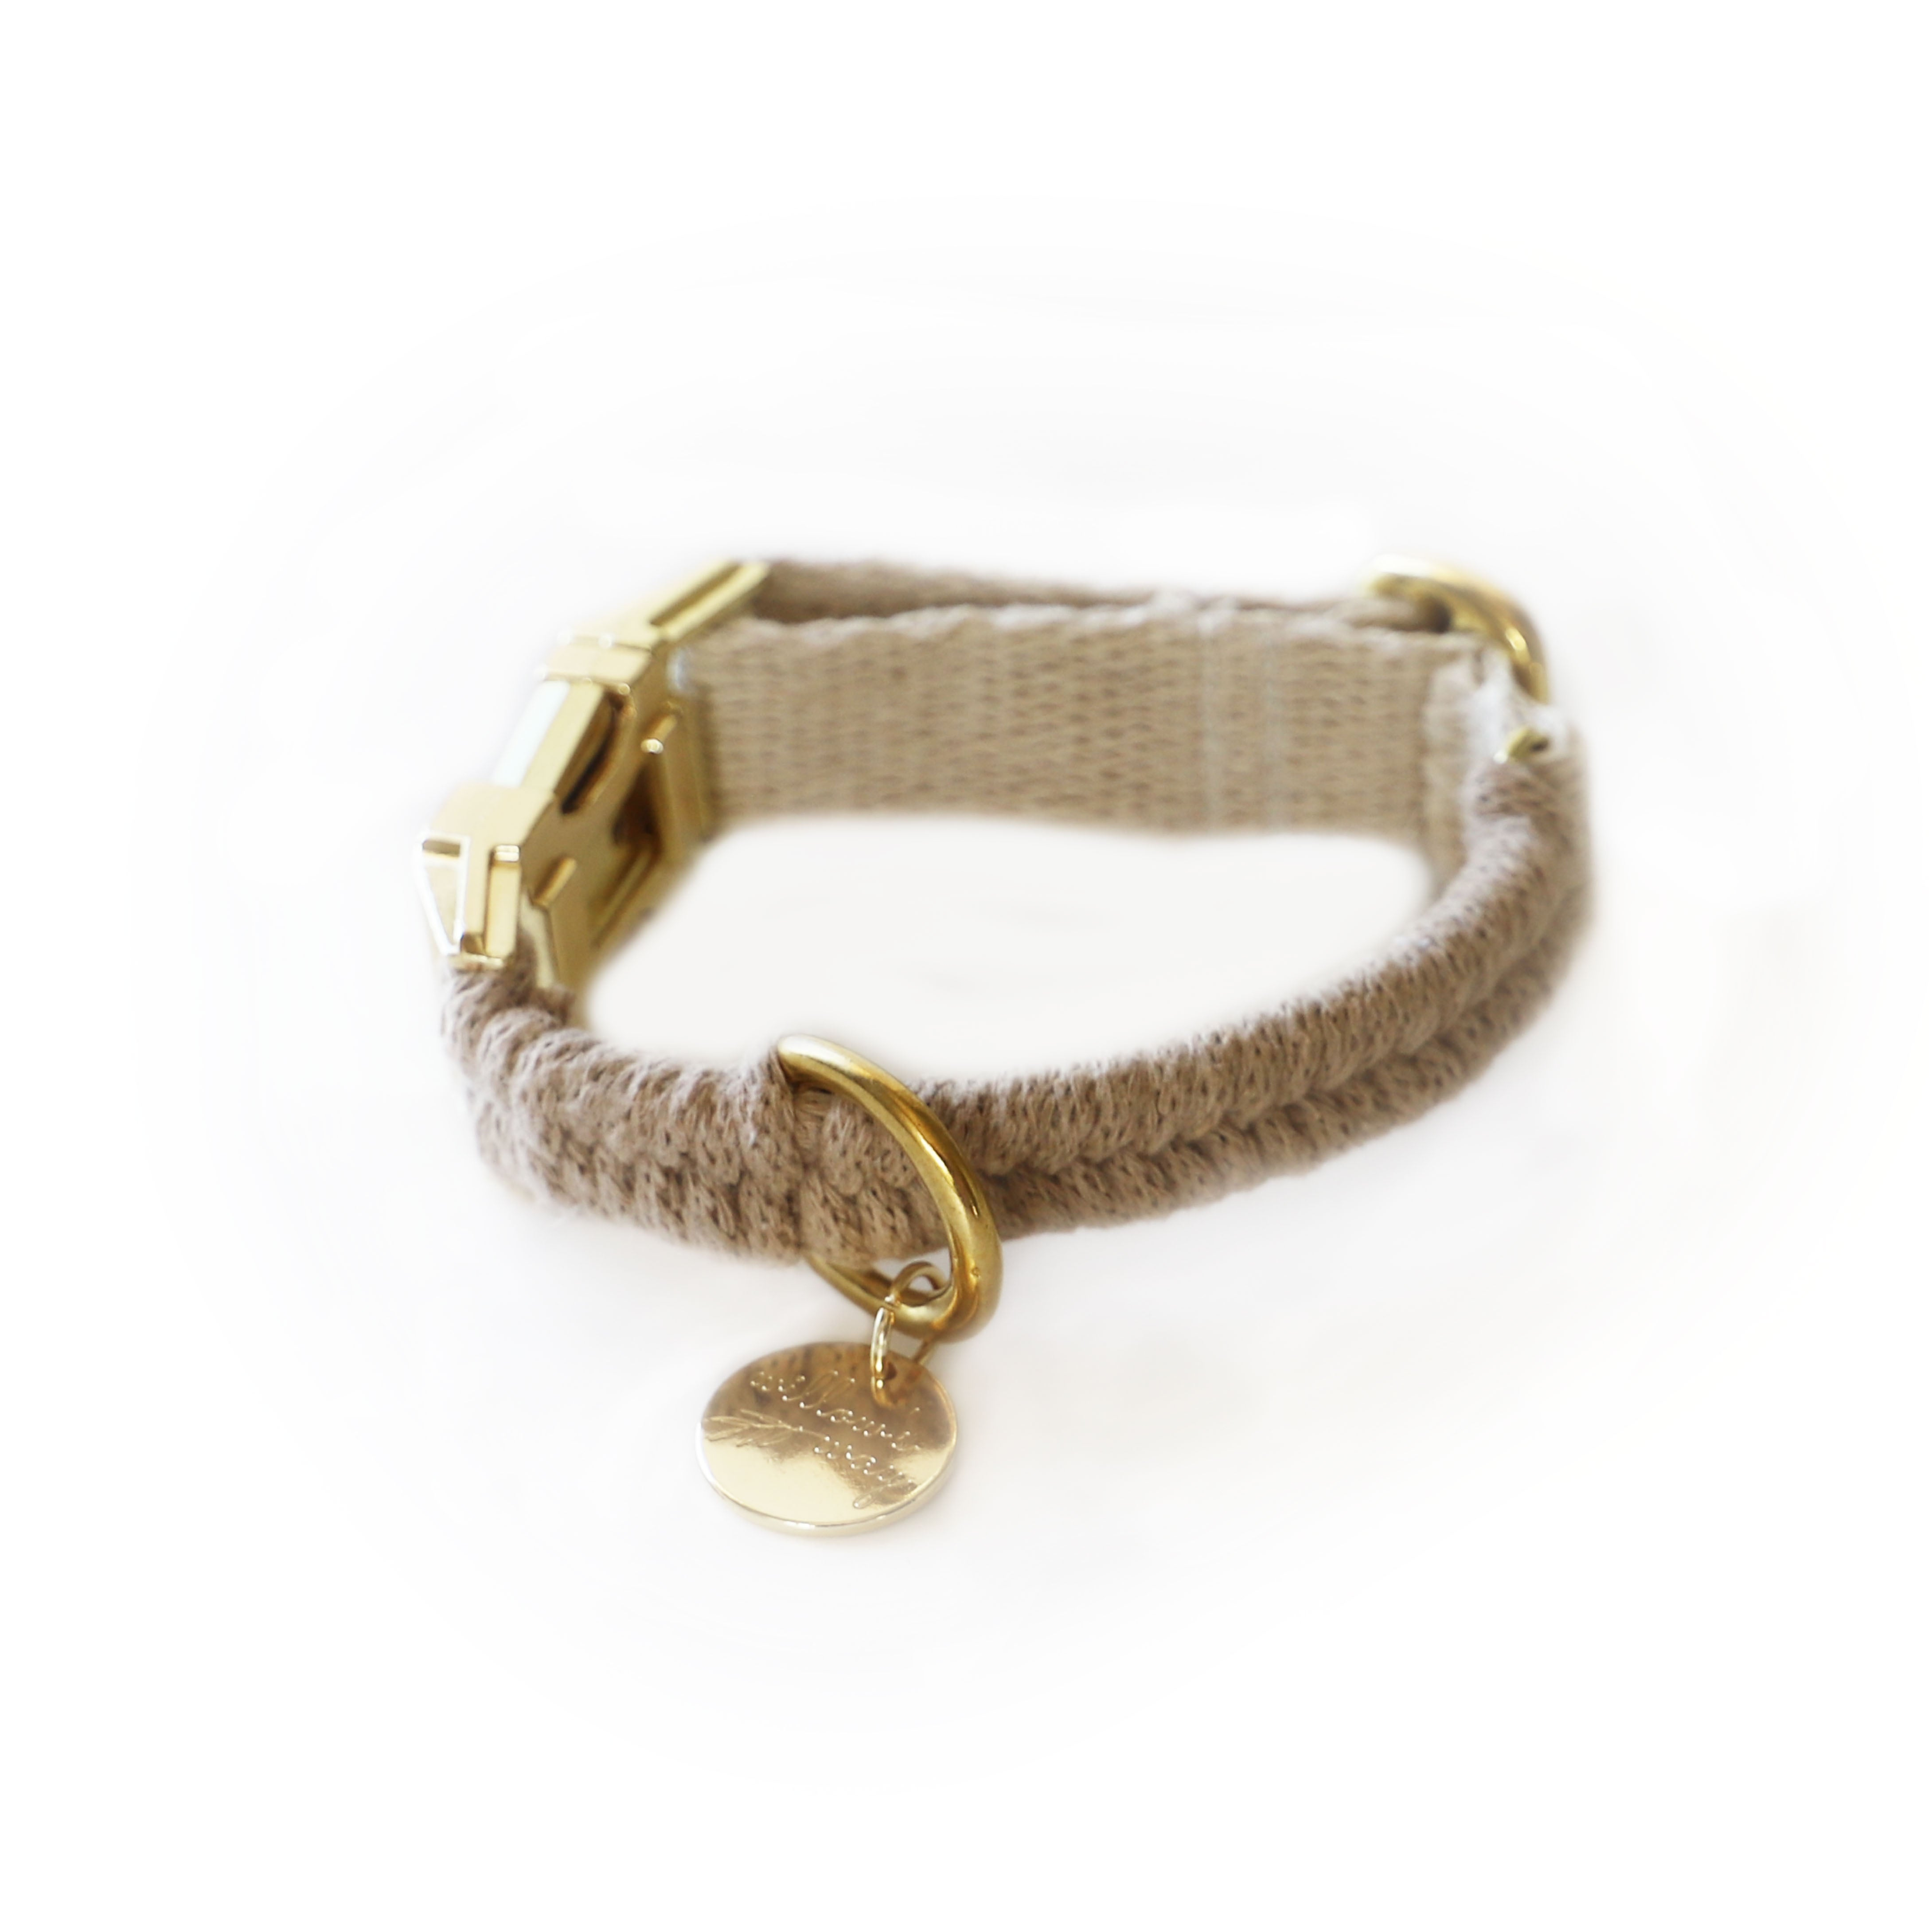 Adjustable Macrame Collar - Sand